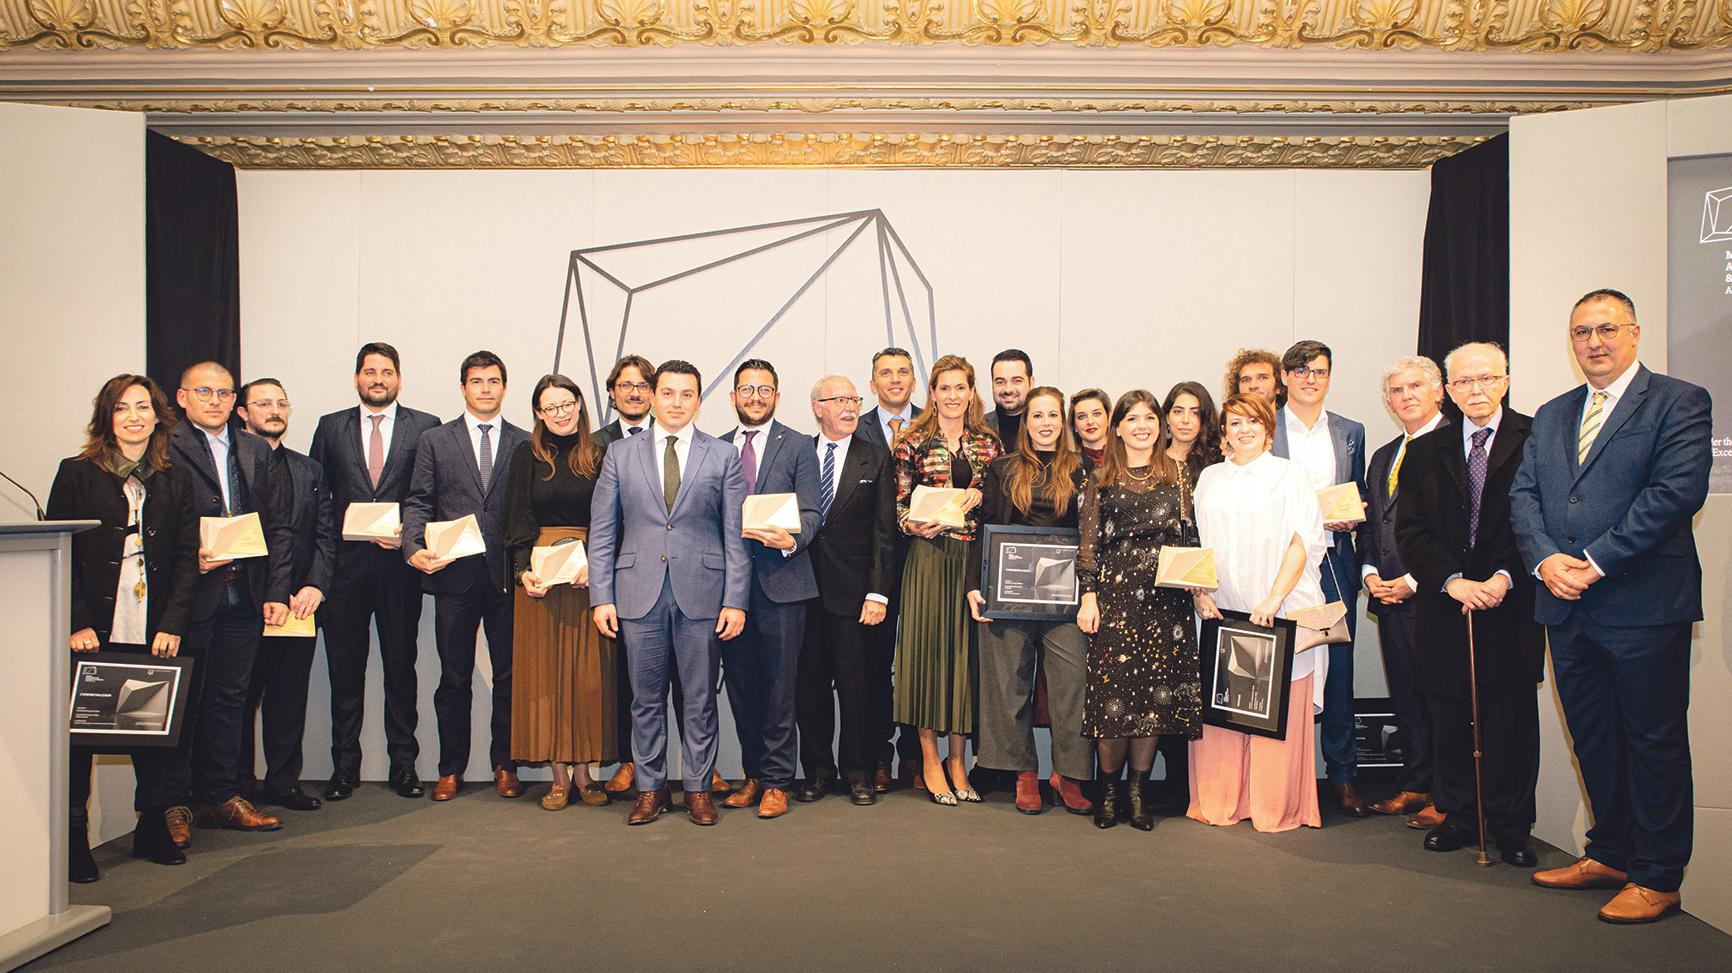 The winners of the Malta Architecture and Spatial Planning Awards 2019